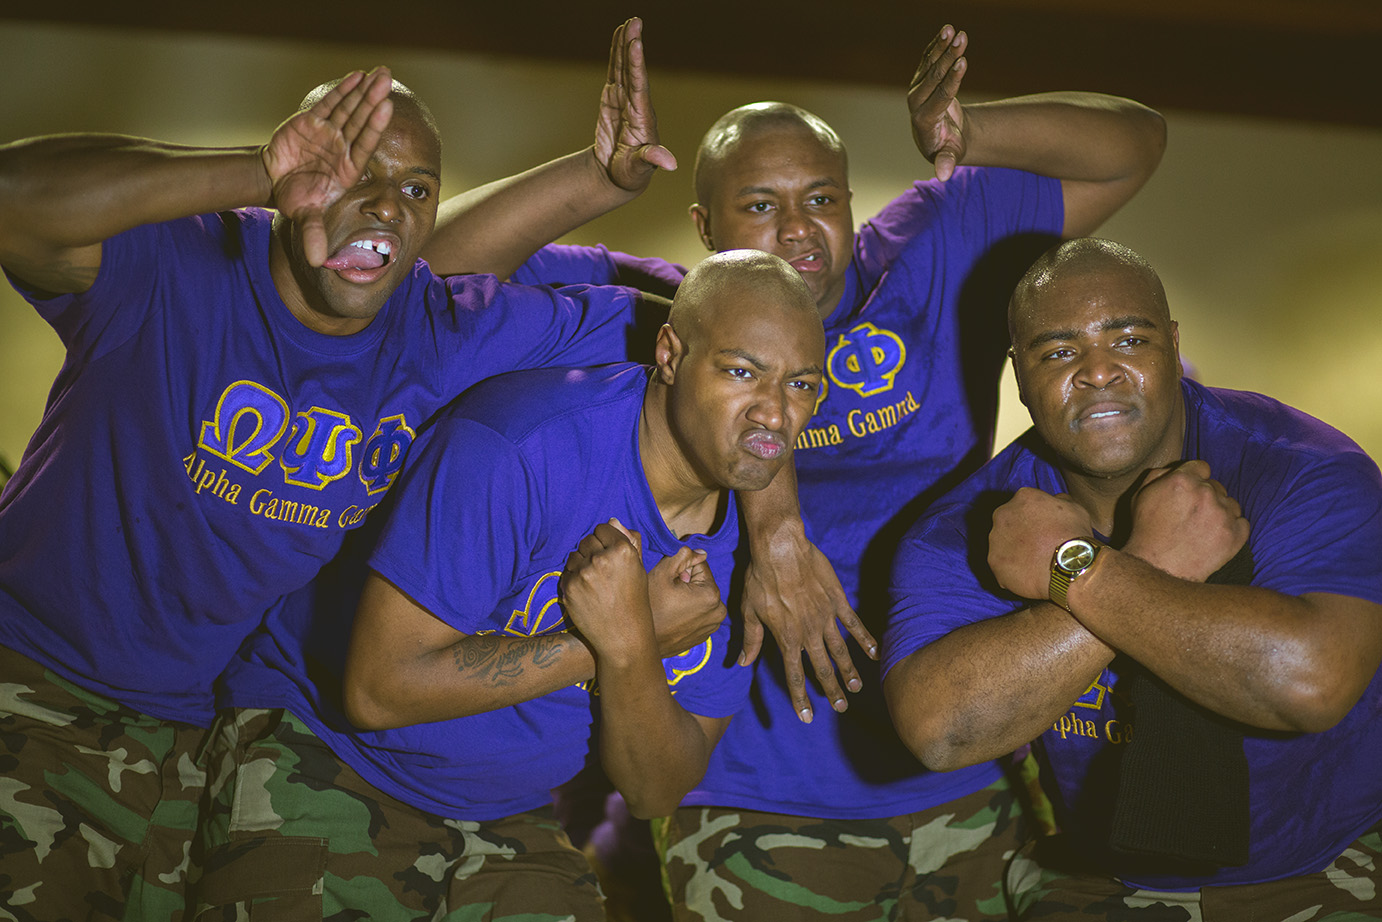 Omega Psi Phi photo